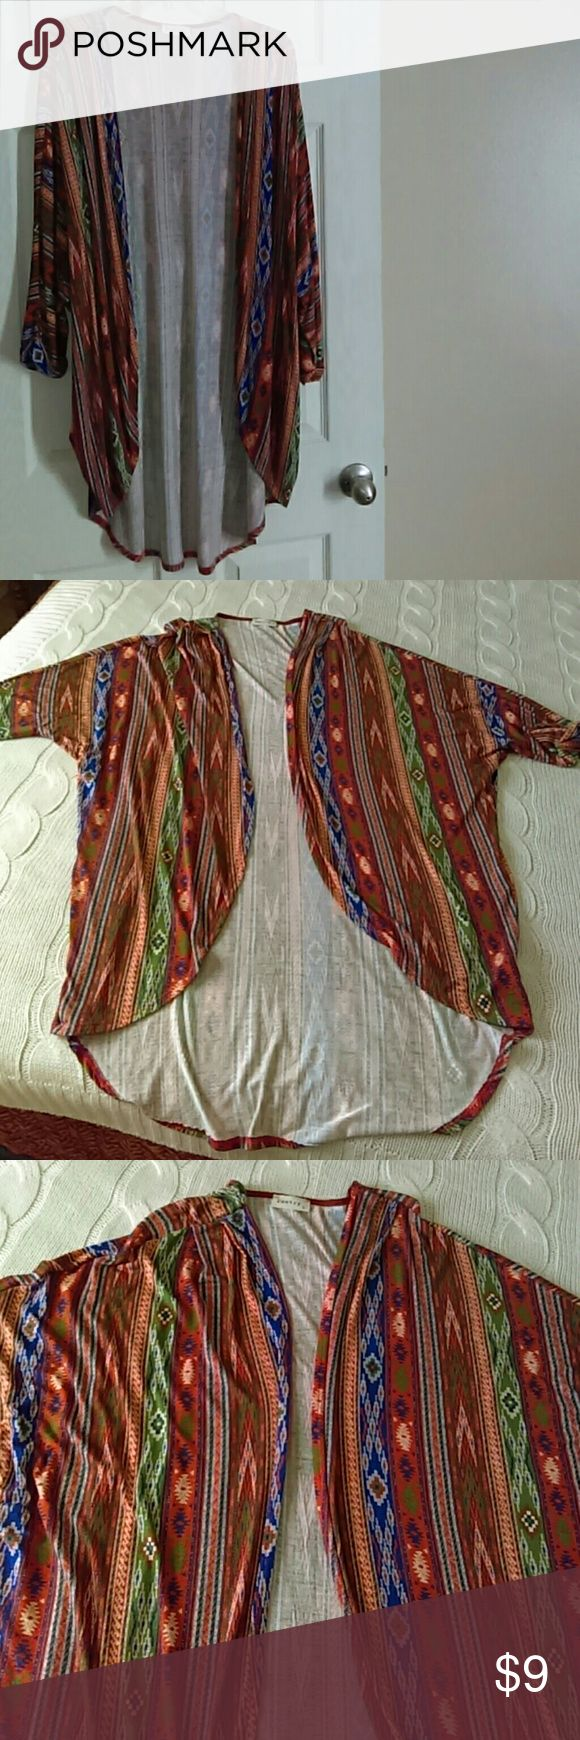 Poetry Aztec/Tribal Cardigan Tunic Poetry Aztec/Tribal Tunic. Very Large. Feels like XL. Poetry Tops Tunics